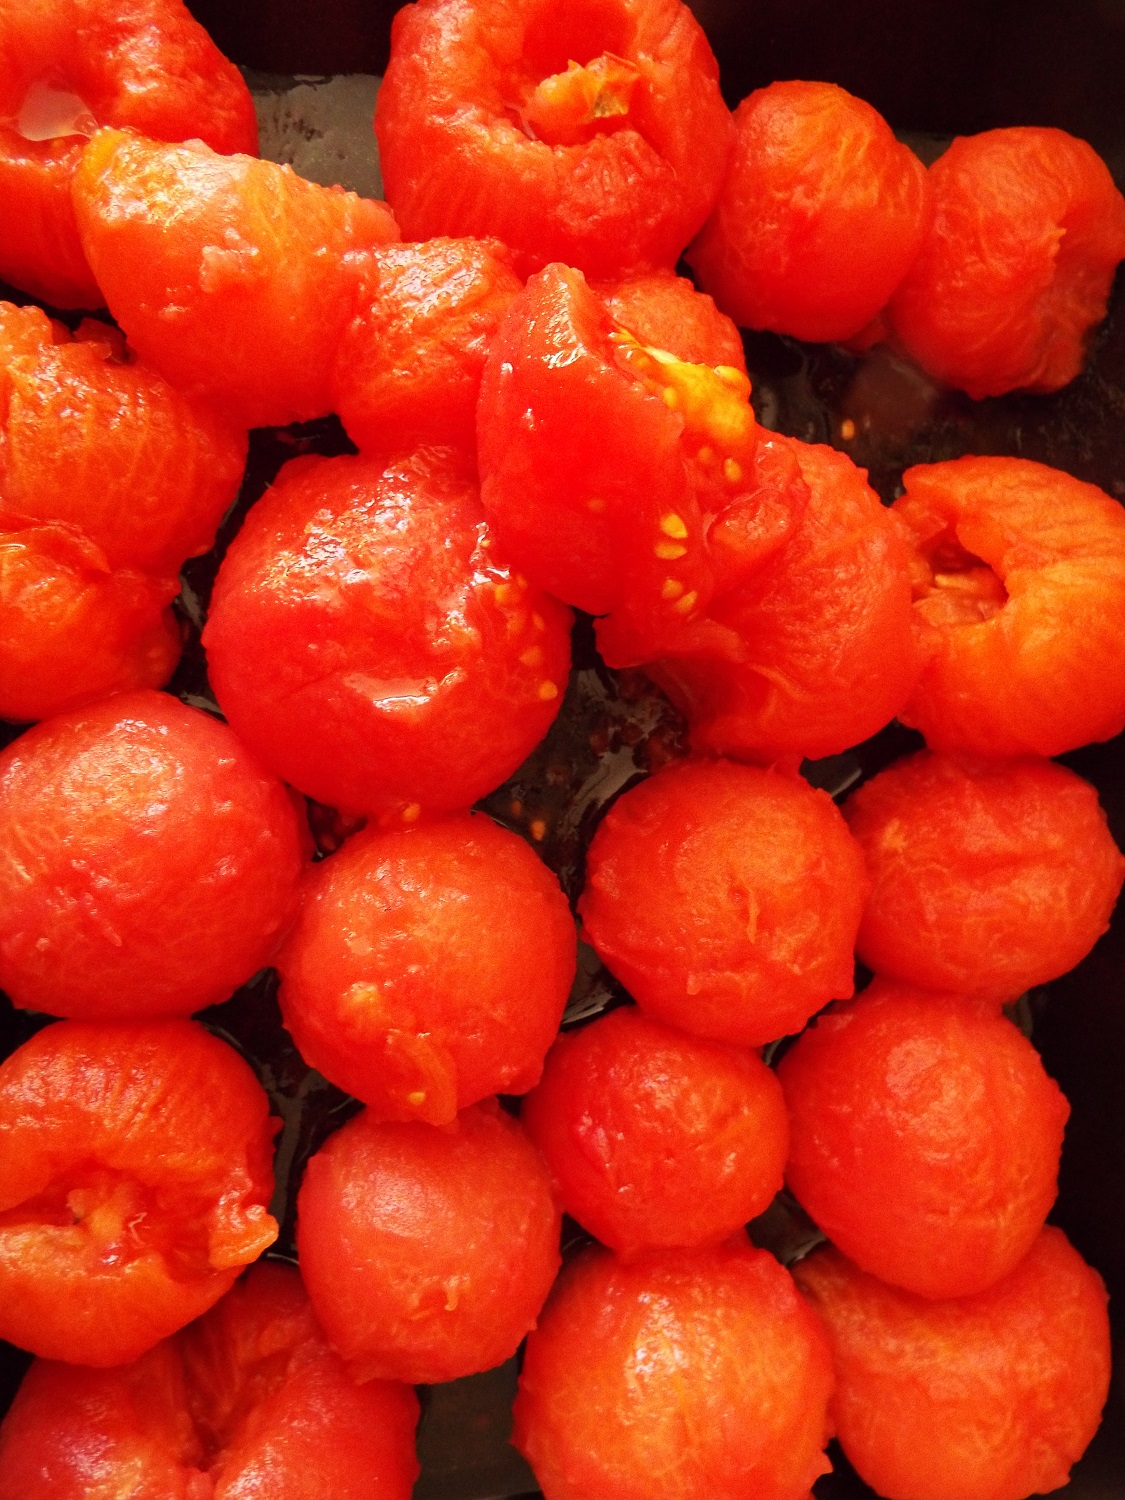 Blanched tomatoes - the skin slides off easily